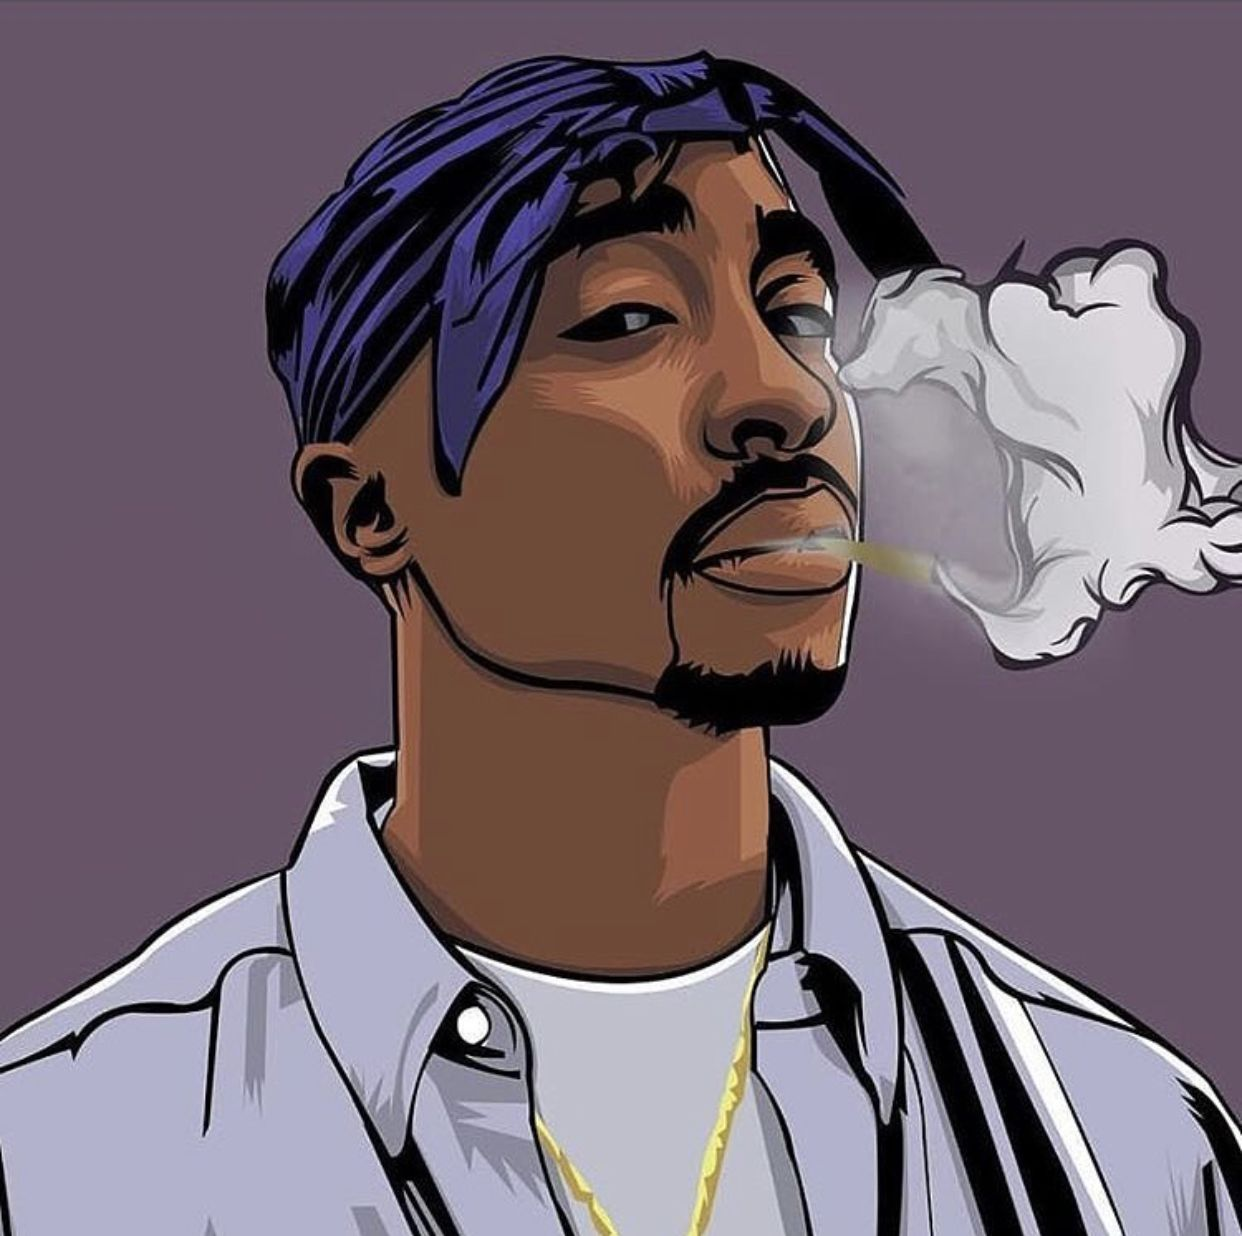 Pin by Quiona Ward on PACbaby Rapper art, Tupac art